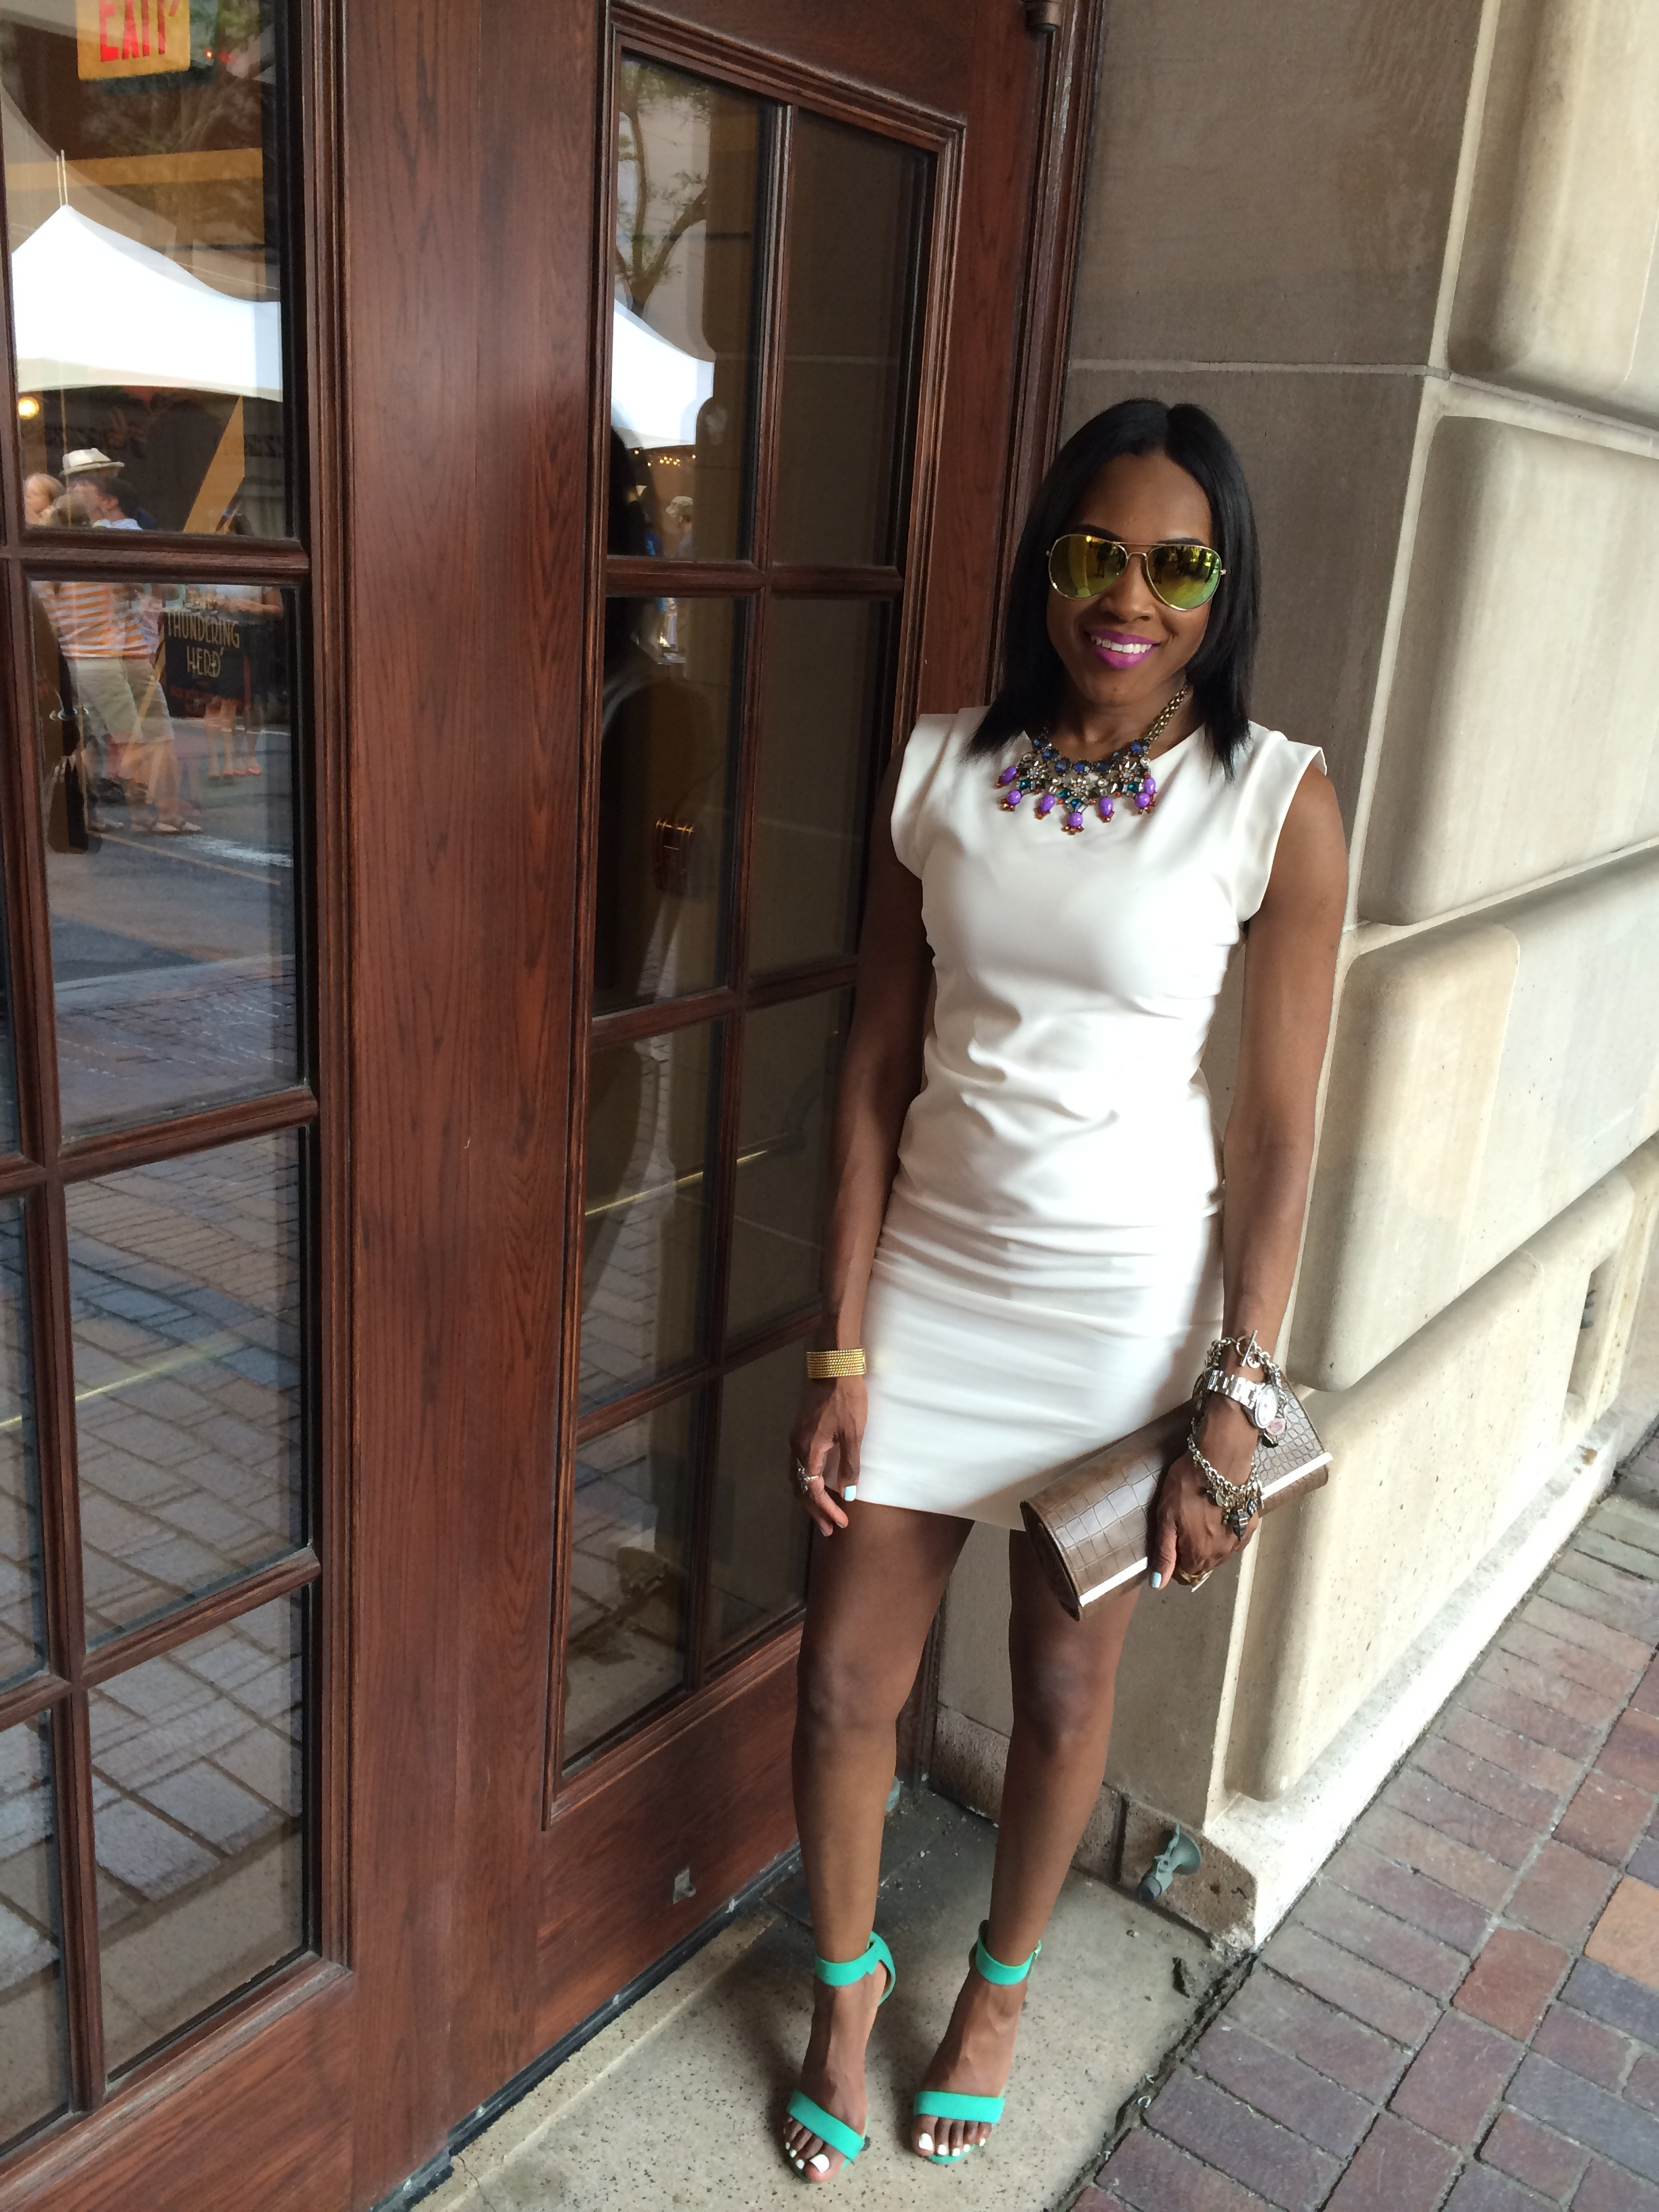 Style-files-white-one-clothing-sheath-dress-just-fab-Paean-seamfoam-mint-green-ankle-strap-sandals-forever-21-white-ruffled-coat-forever-21-mirrored-tint-sunglasses-birthday-behavior-jday-oohlalablog-